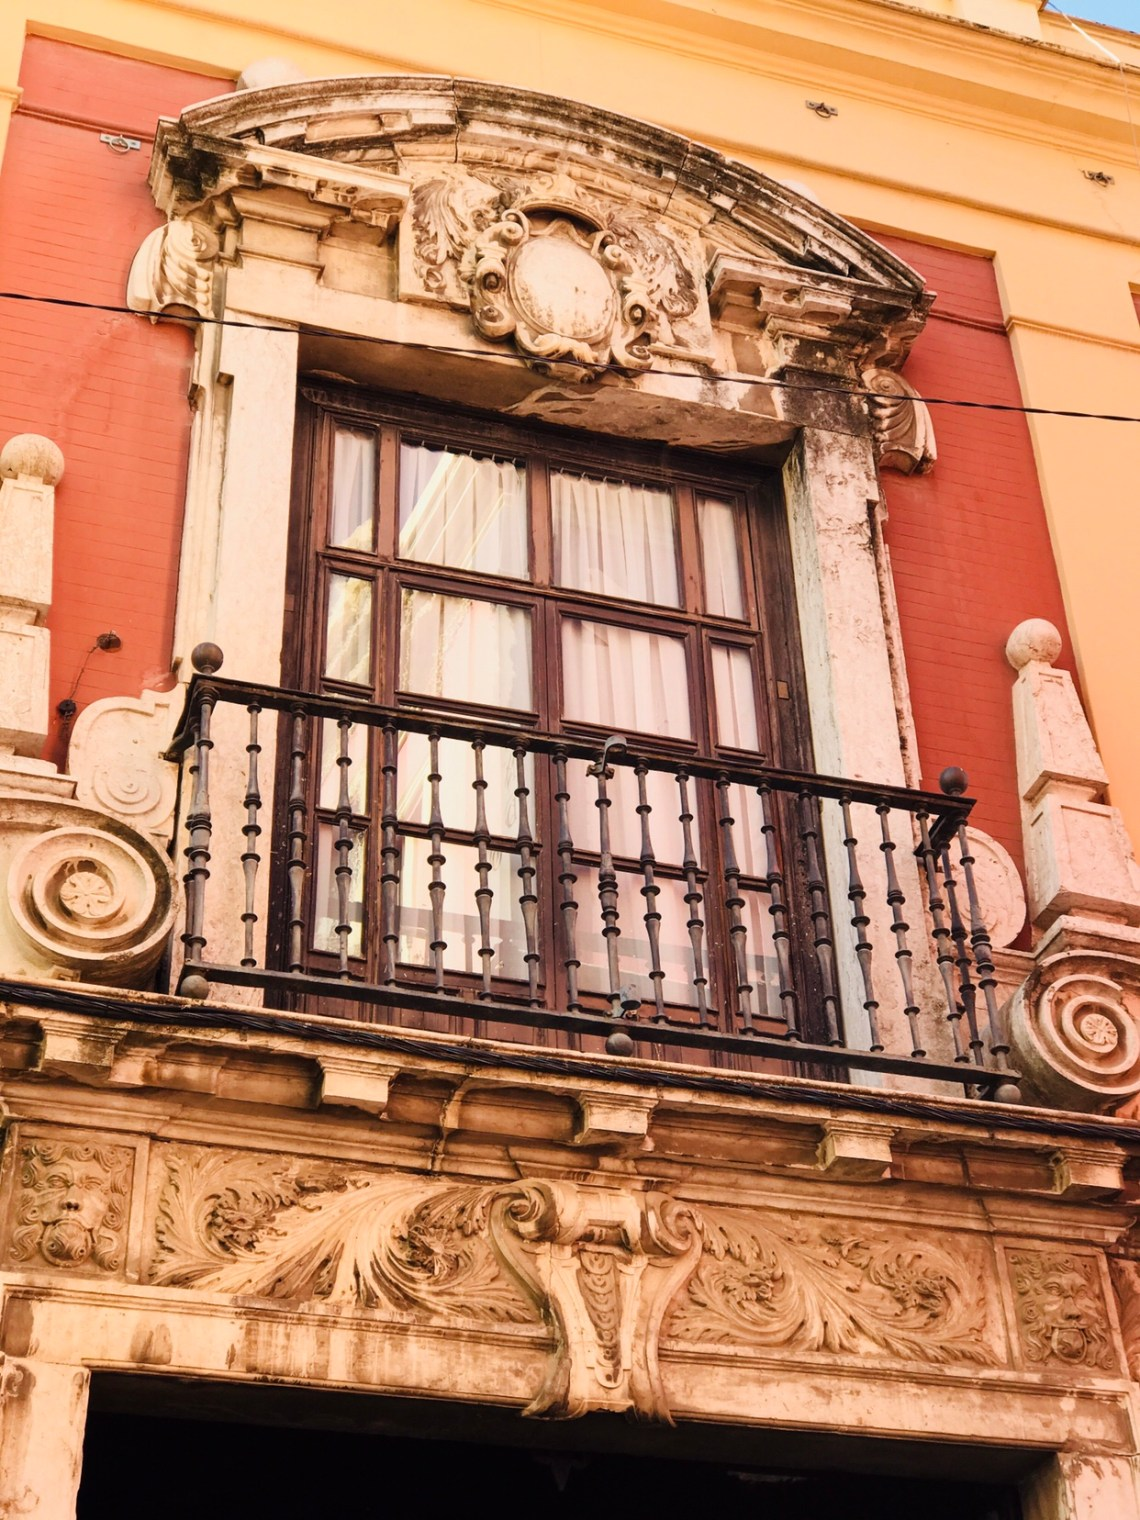 A window on the house in the lanes of Seville.